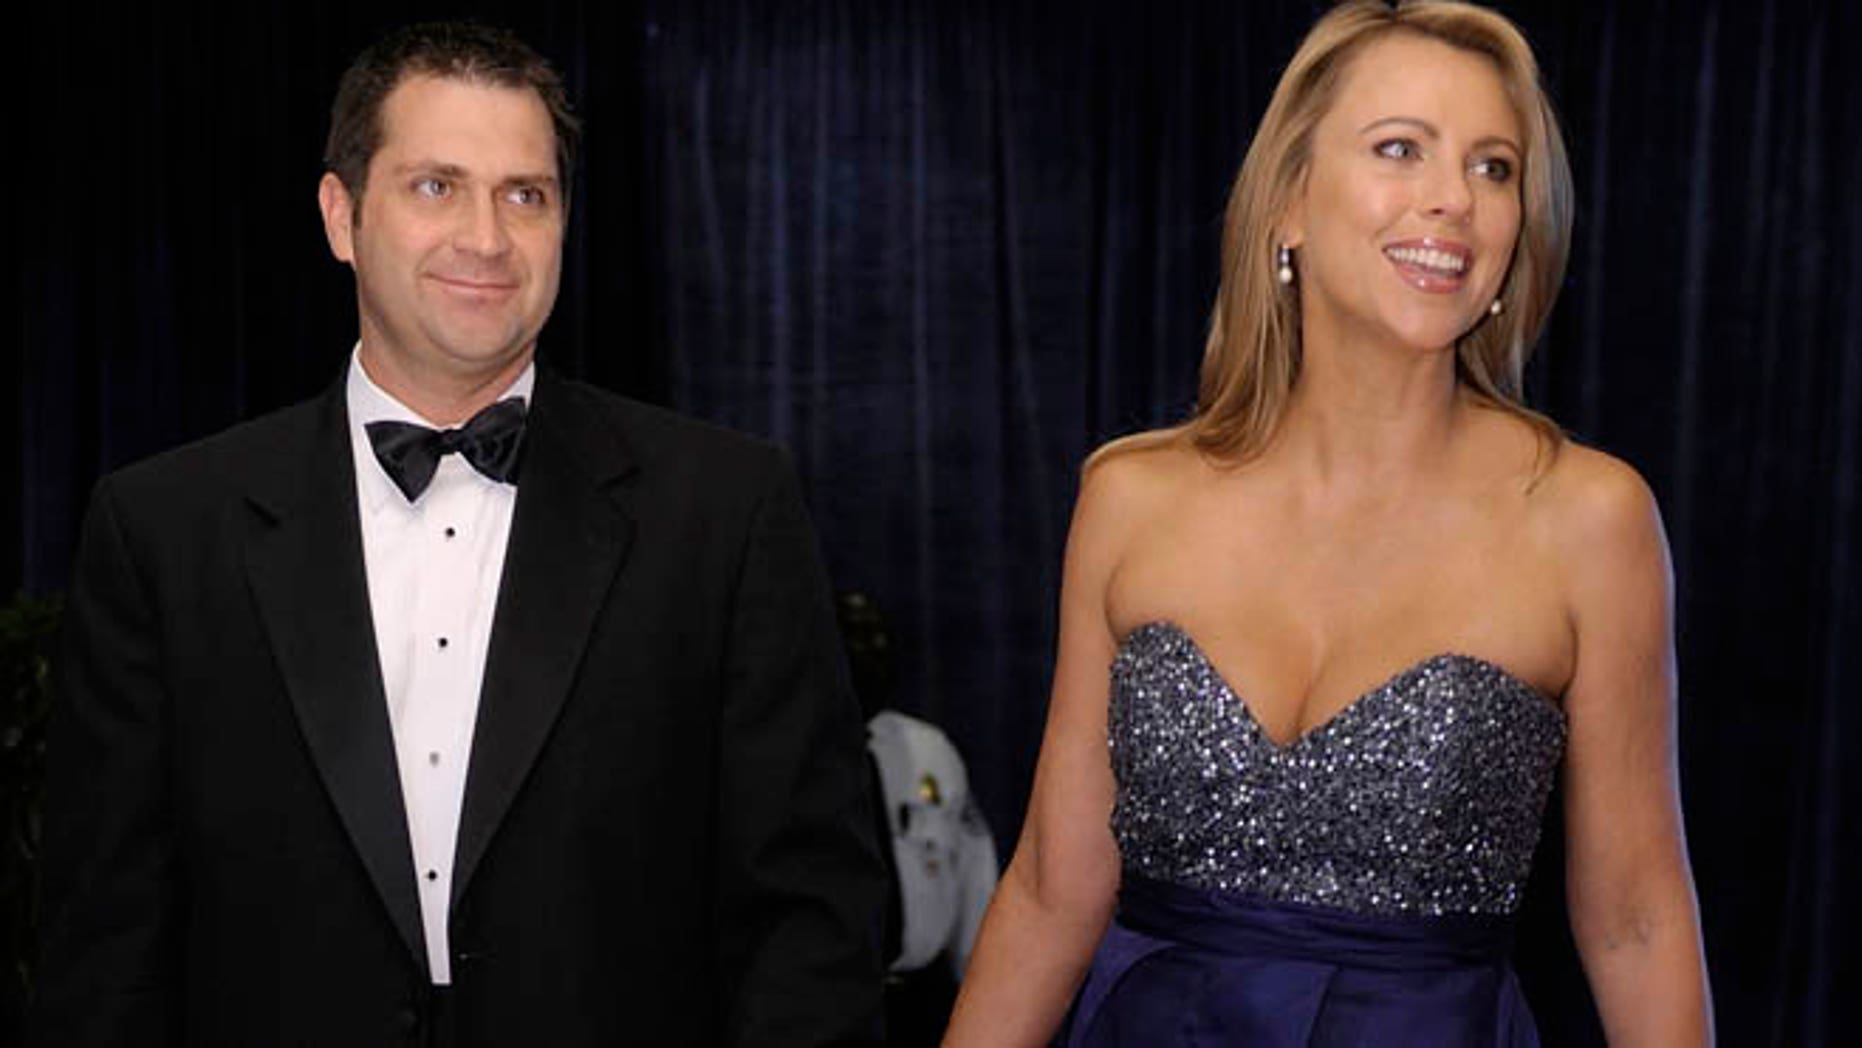 Lara Logan of CBS News and her husband Joseph Burkett stand on the red carpet as they arrive for the annual White House Correspondents' Association dinner in Washington, April 30, 2011. REUTERS/Jonathan Ernst    (UNITED STATES - Tags: POLITICS ENTERTAINMENT MEDIA) - RTR2LU14